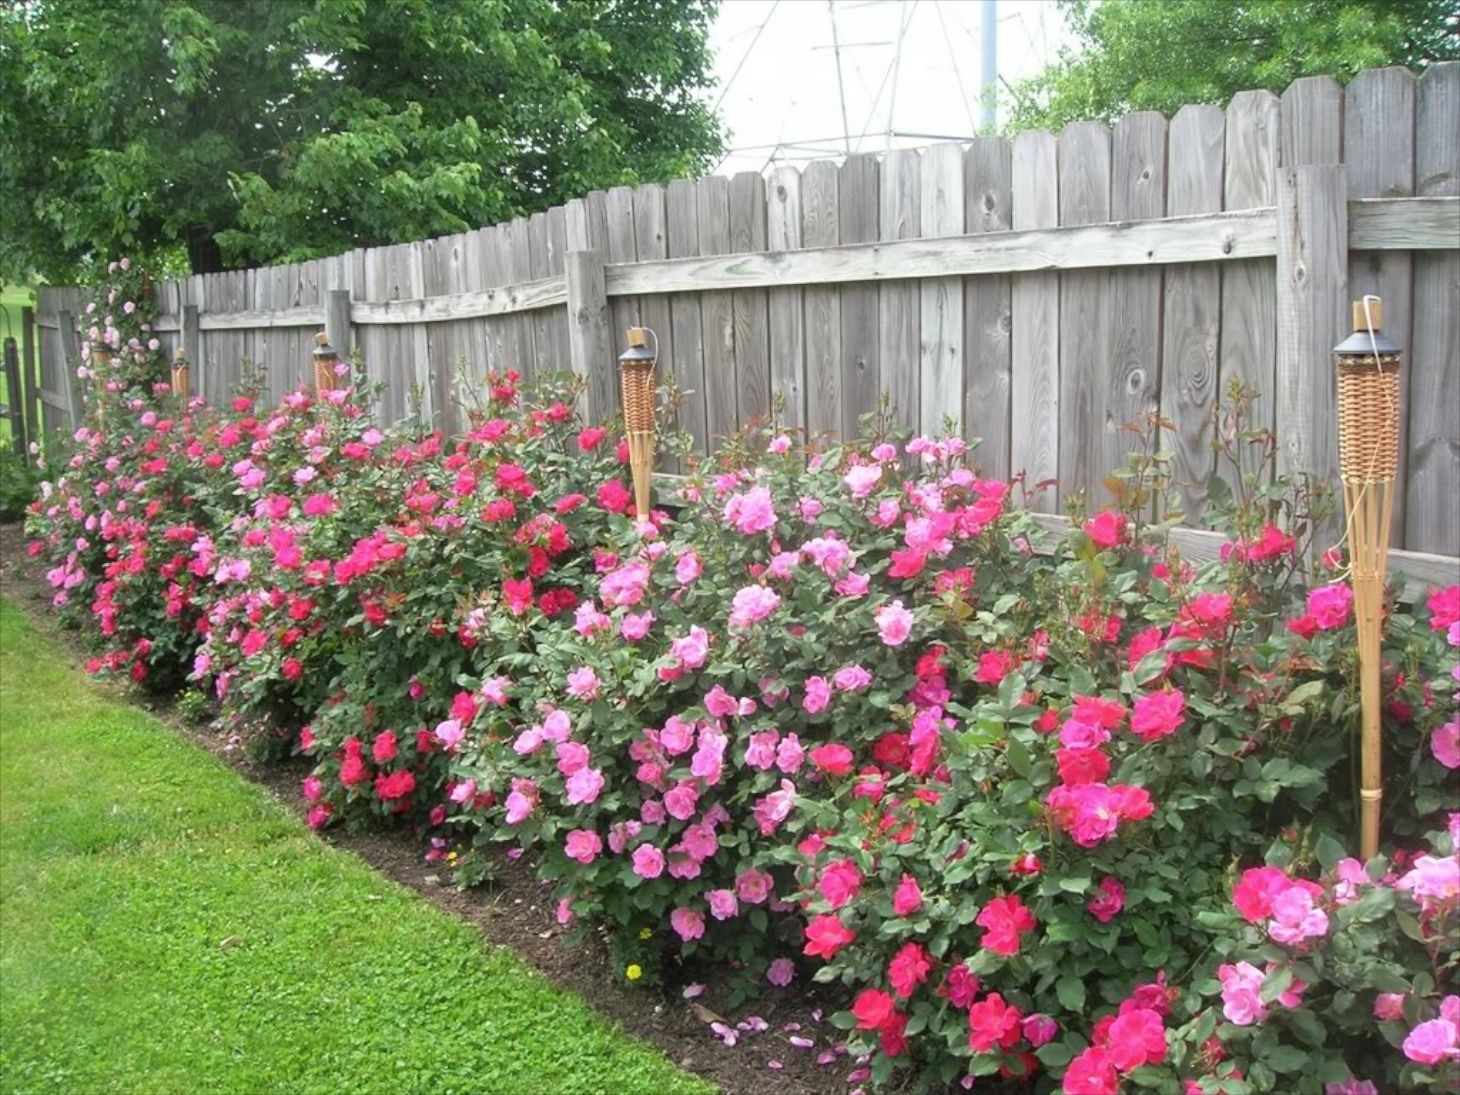 Knock Out Roses In 2021 Knockout Roses Landscaping Along Fence Lawn And Garden